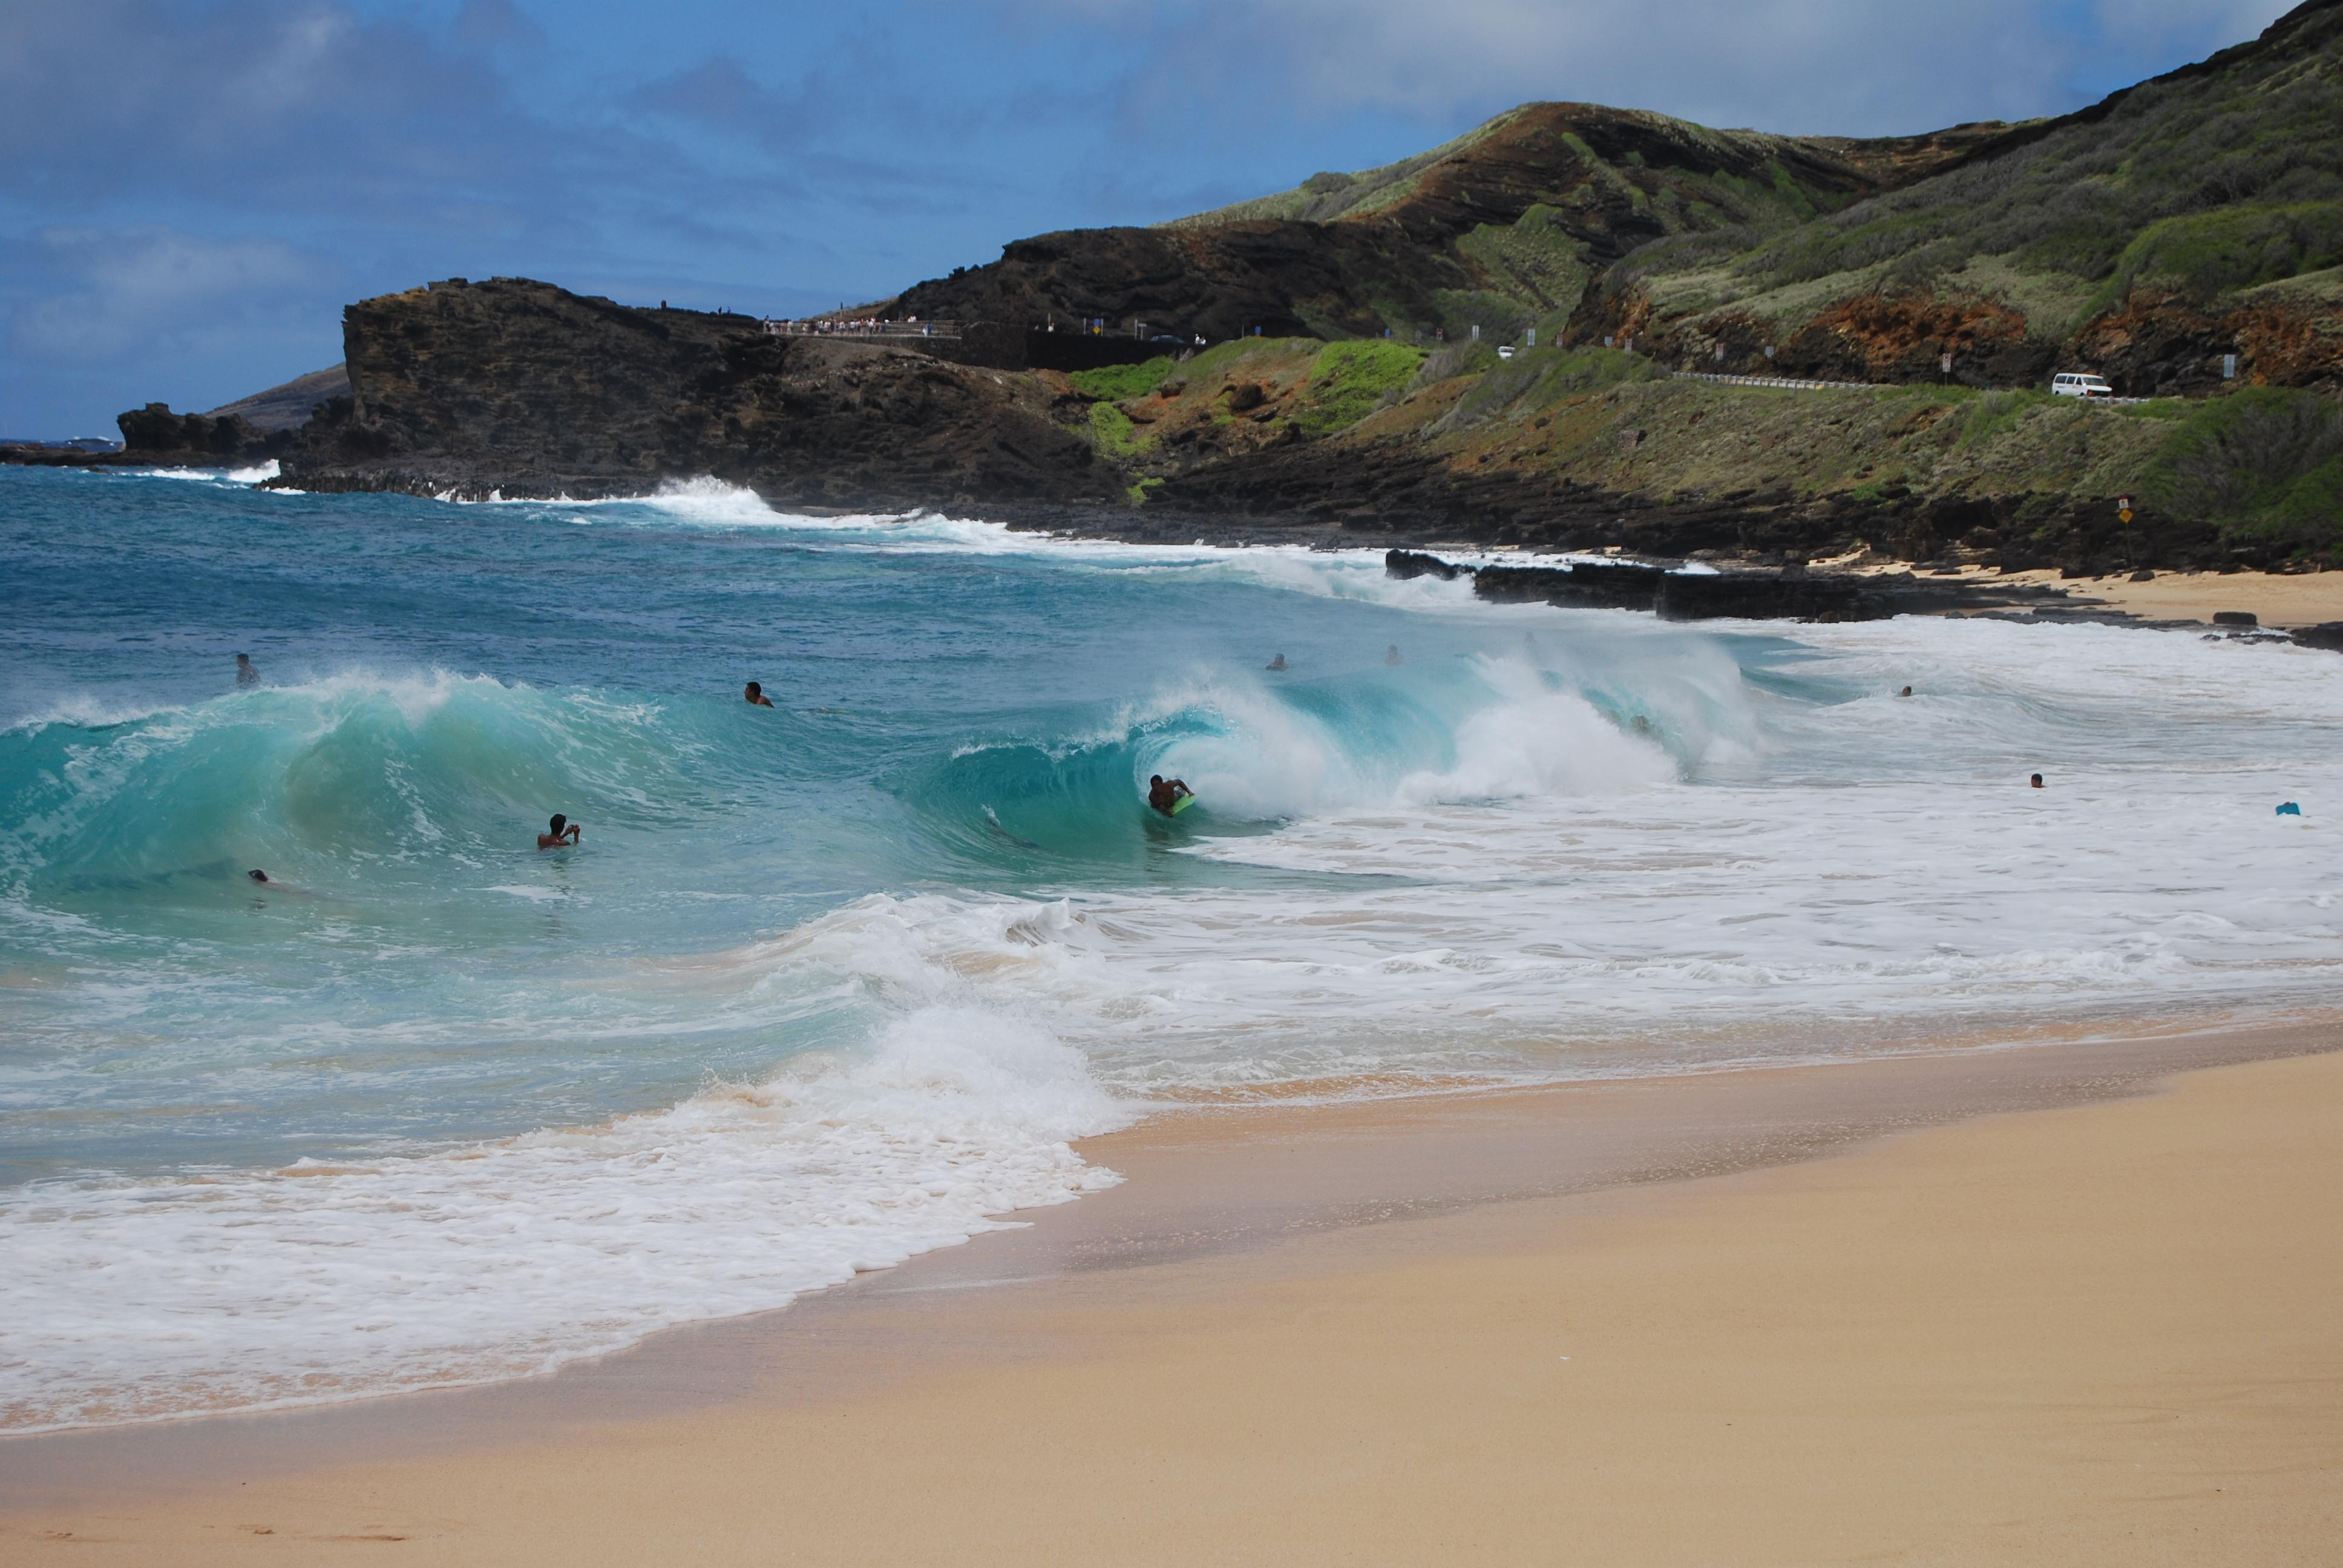 """Oahu South Shore<br/>Photo <a href=""""//creativecommons.org/licences/by/3.0/"""" class=""""cc-small"""" target=""""_blank""""><img typeof=""""foaf:Image"""" class=""""image-style-none"""" src=""""https://i.creativecommons.org/l/by/3.0/80x15.png"""" width=""""80px"""" height=""""15px"""" alt=""""Creative Commons Licence"""" /></a> <a href=""""http://www.flickr.com/photos/mattcsims/3928293951/"""">MattSims</a>"""